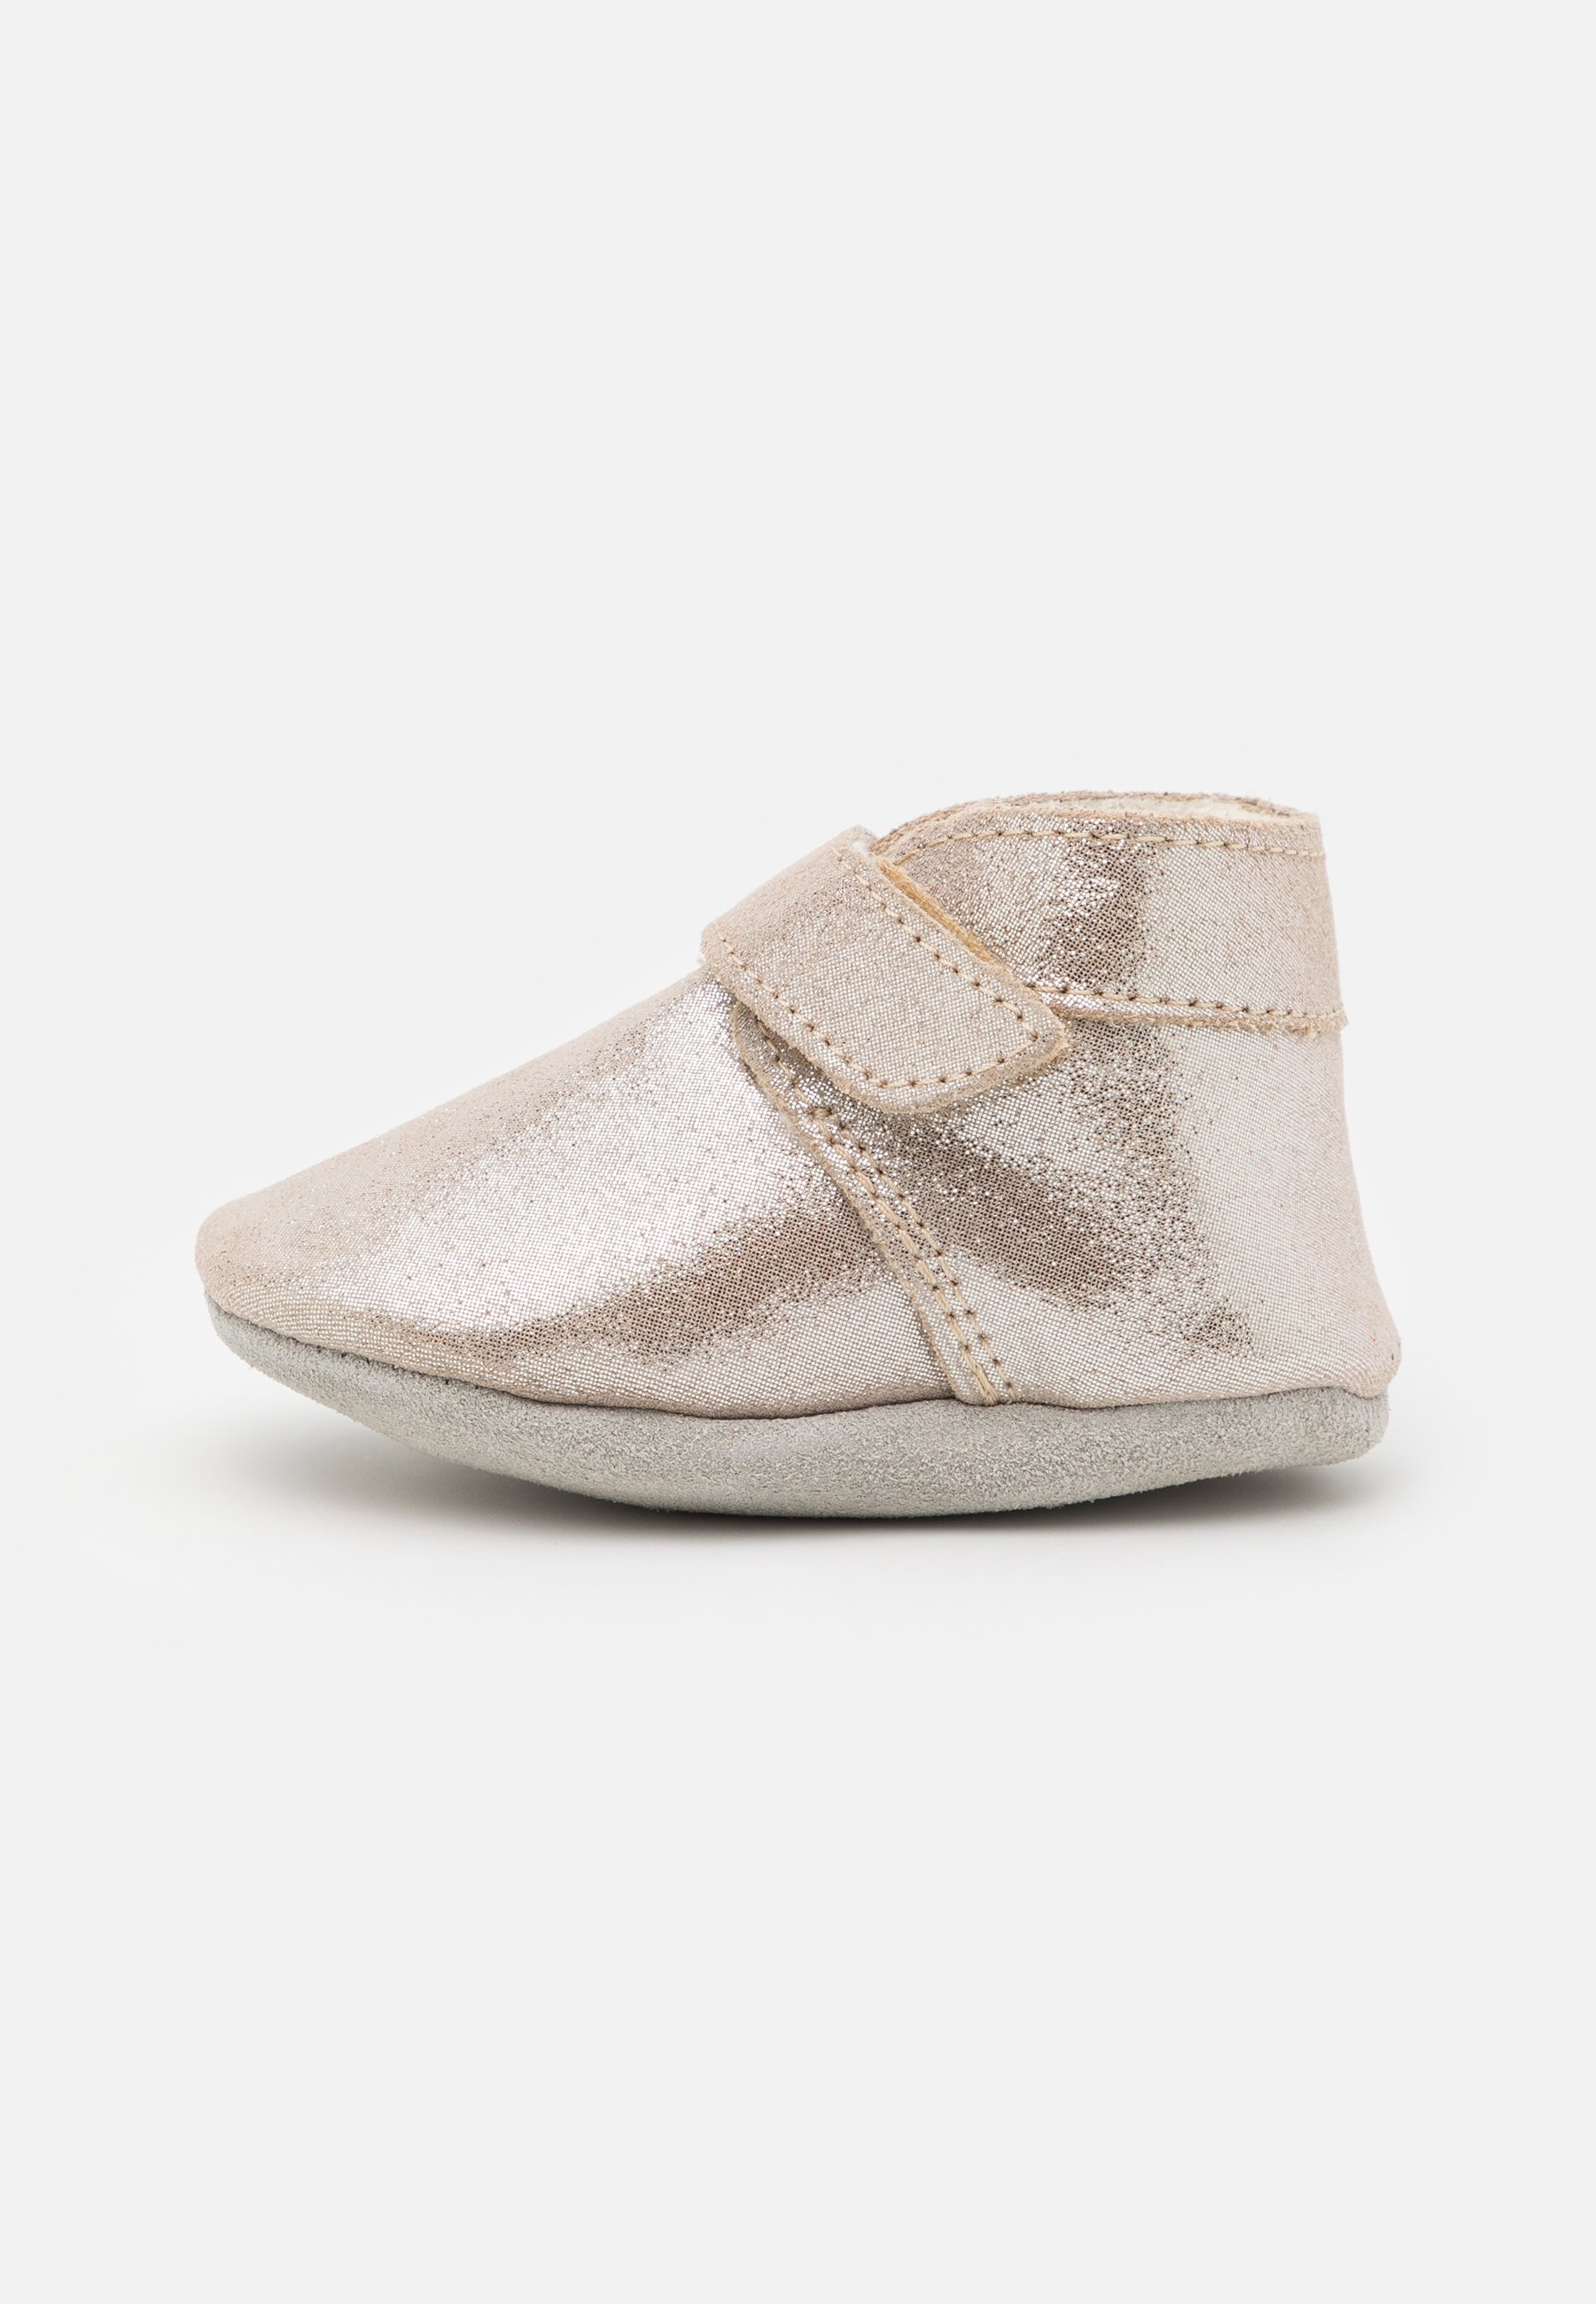 Kids POLE NORD - First shoes - bronze